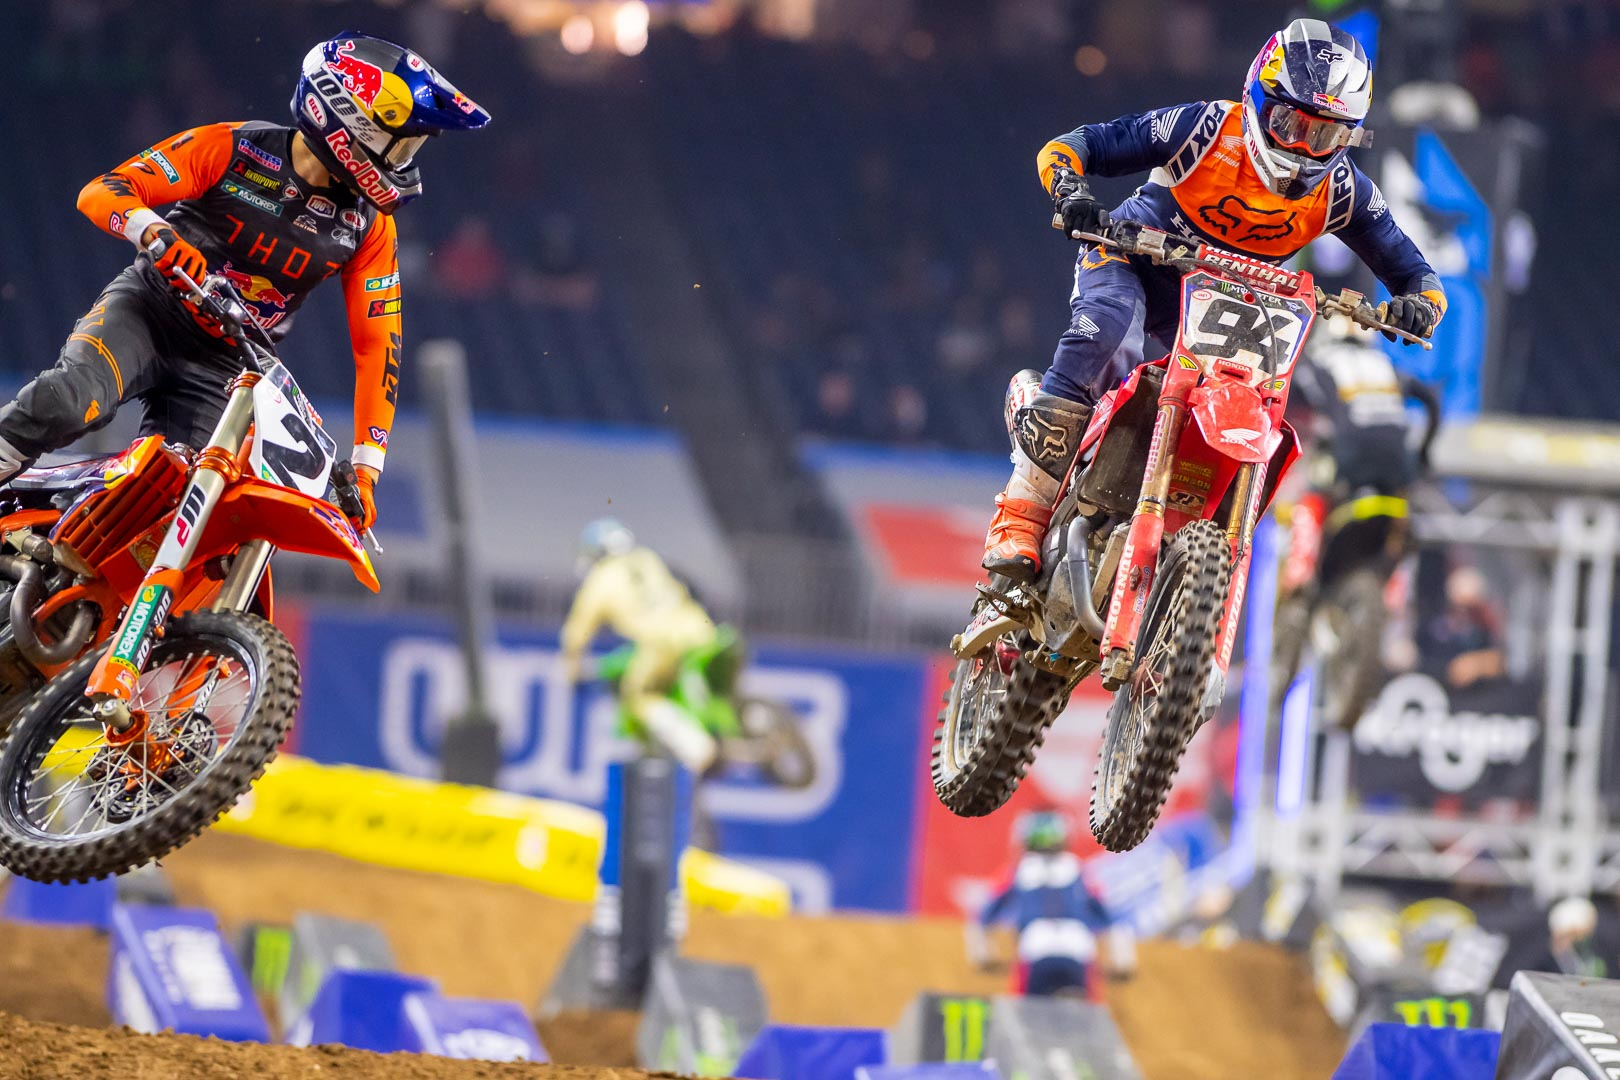 2021 Indianapolis 1 Fantasy Supercross Tips - Webb and Roczen